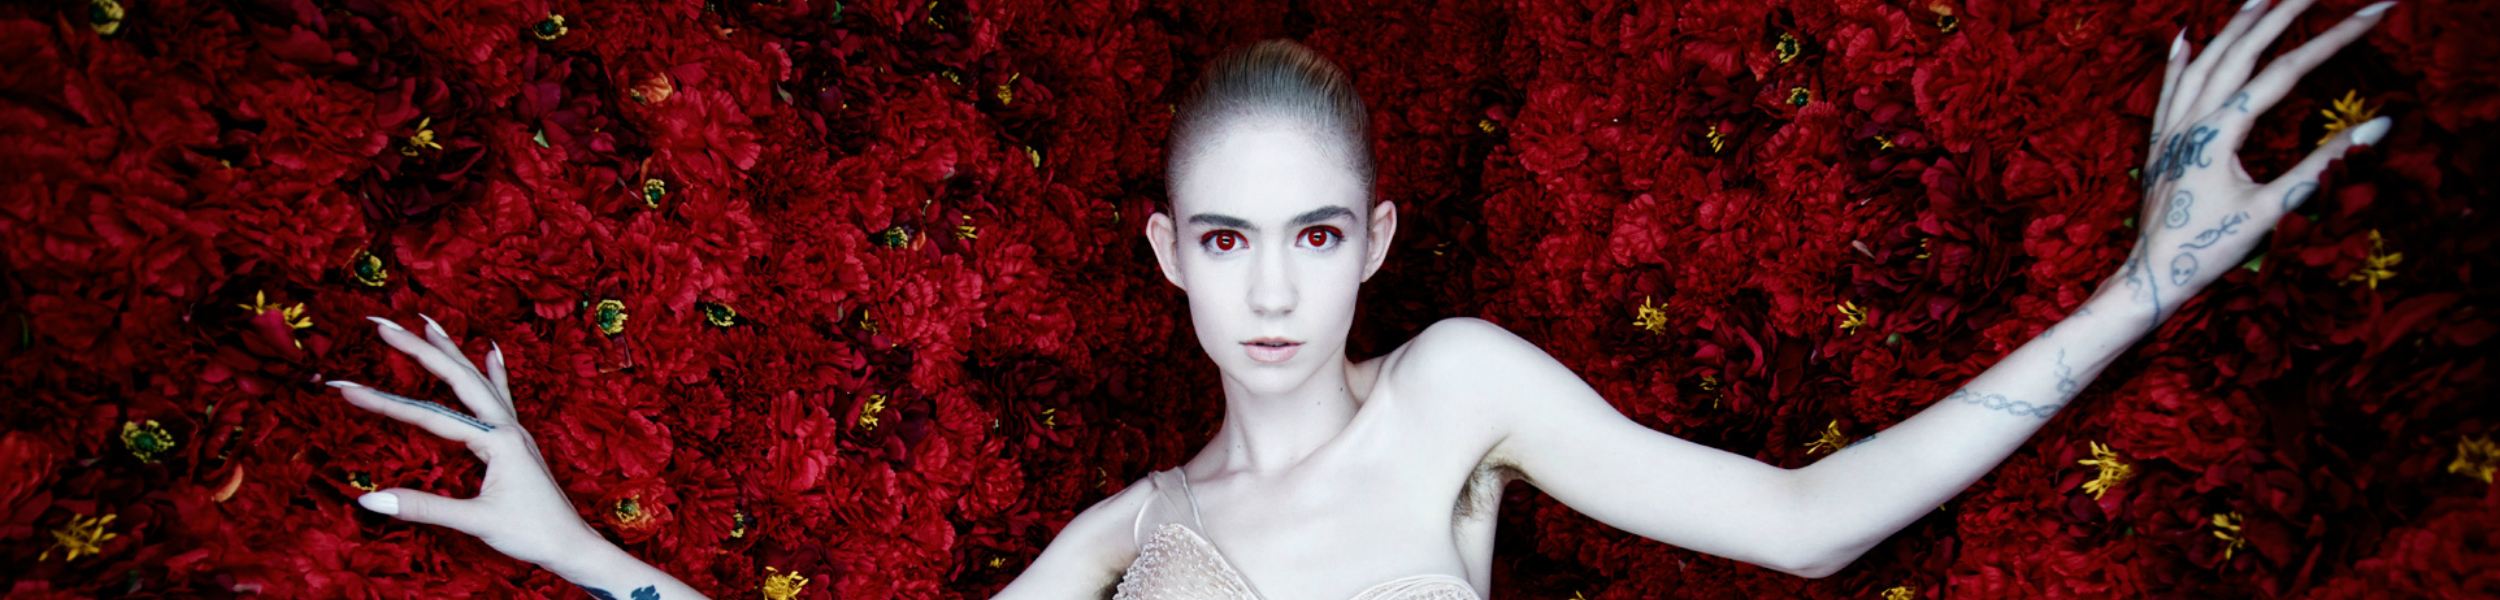 Grimes - Grimes Shares Official Video For 'Go'